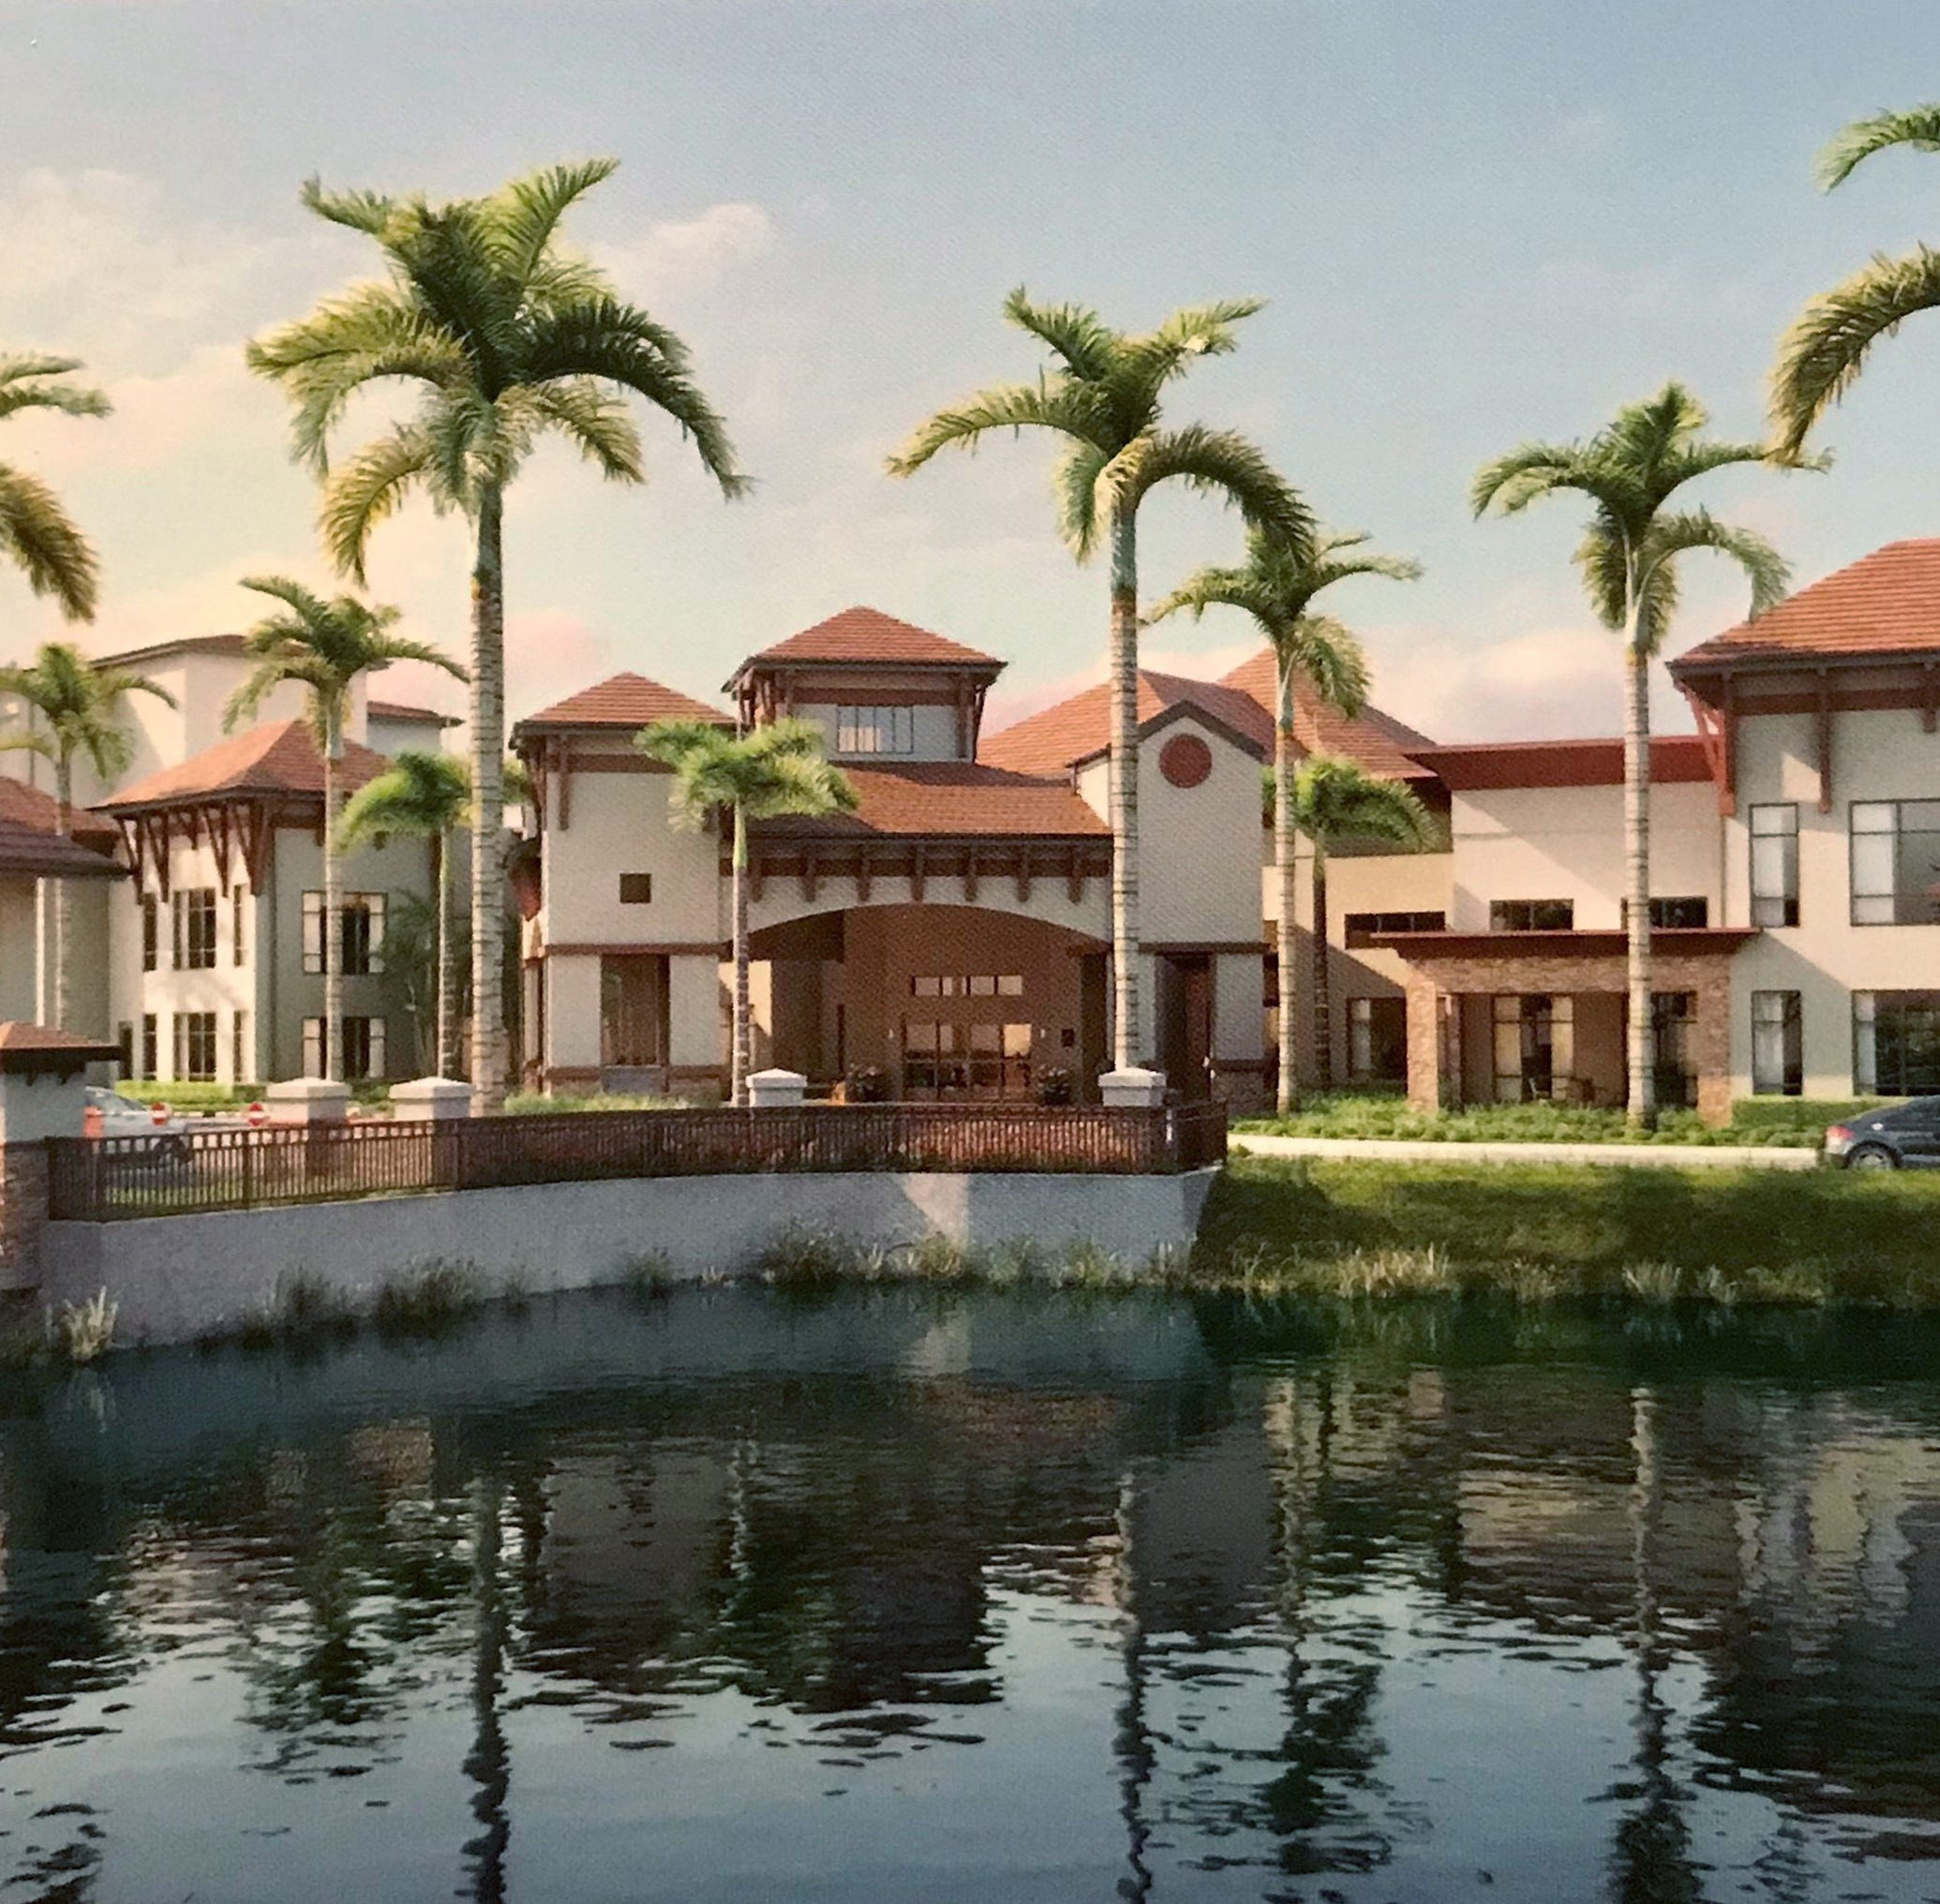 In the Know: Work begins on senior community on Orange Blossom Drive